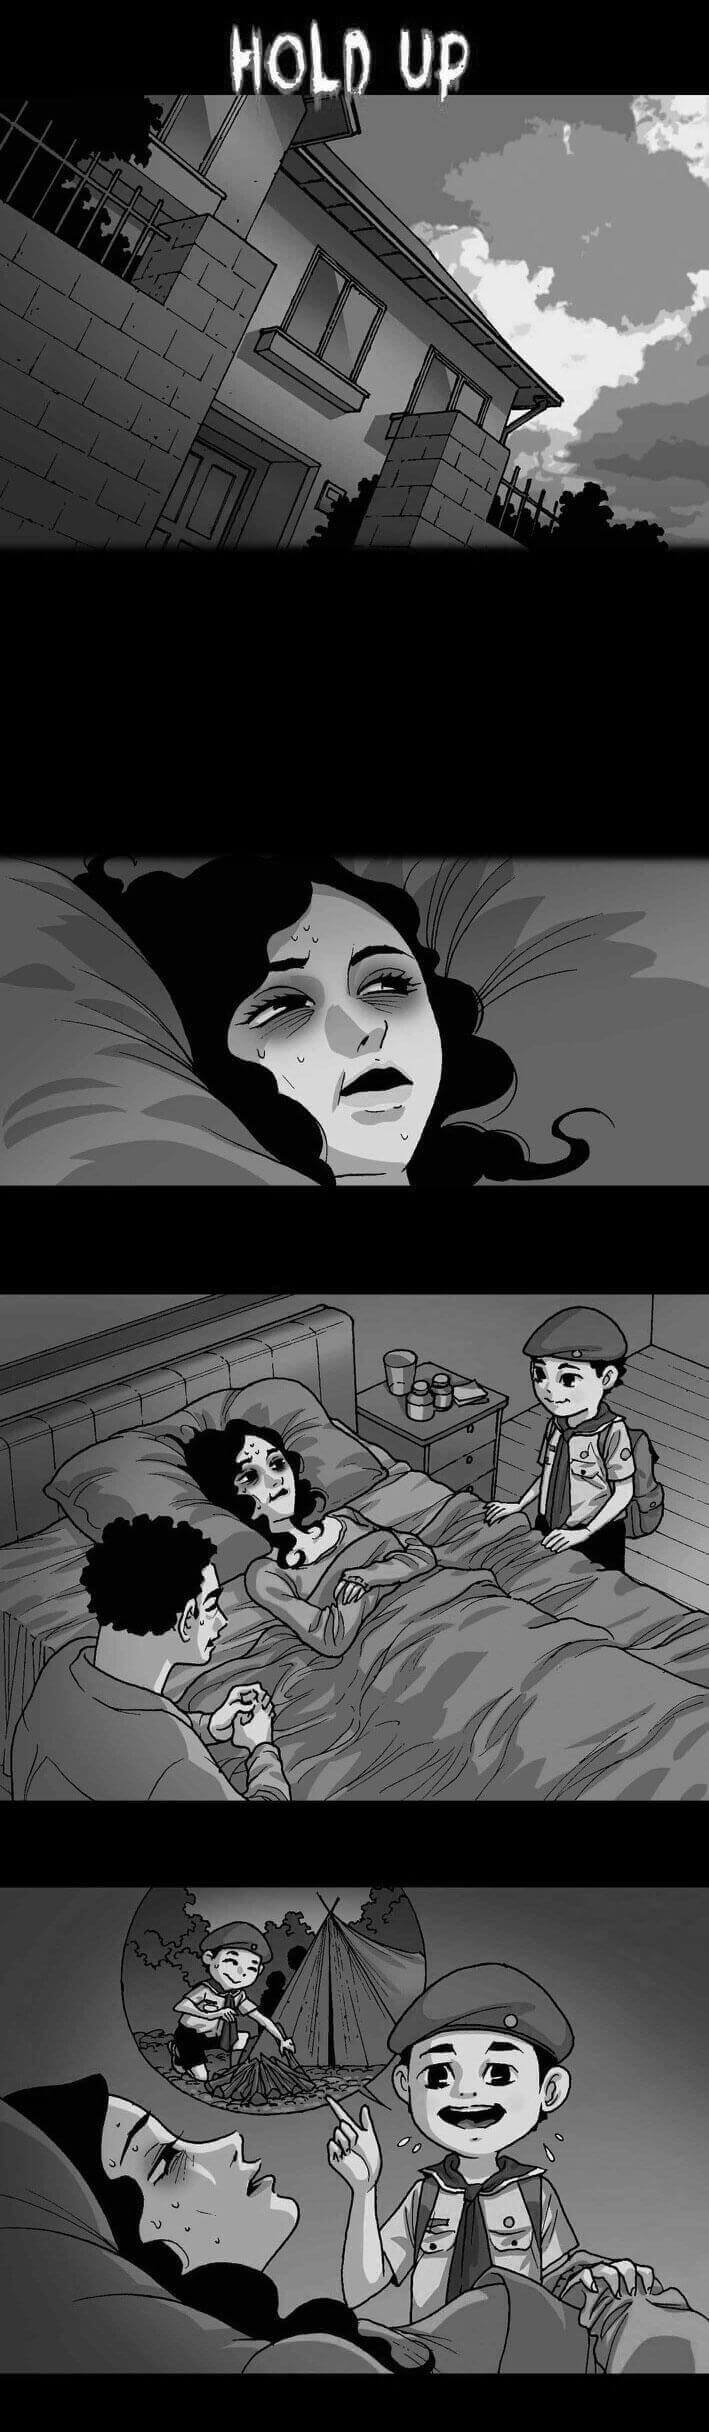 Artist Creates Horror Stories That Will Terrify You Without Saying A Single Word part1